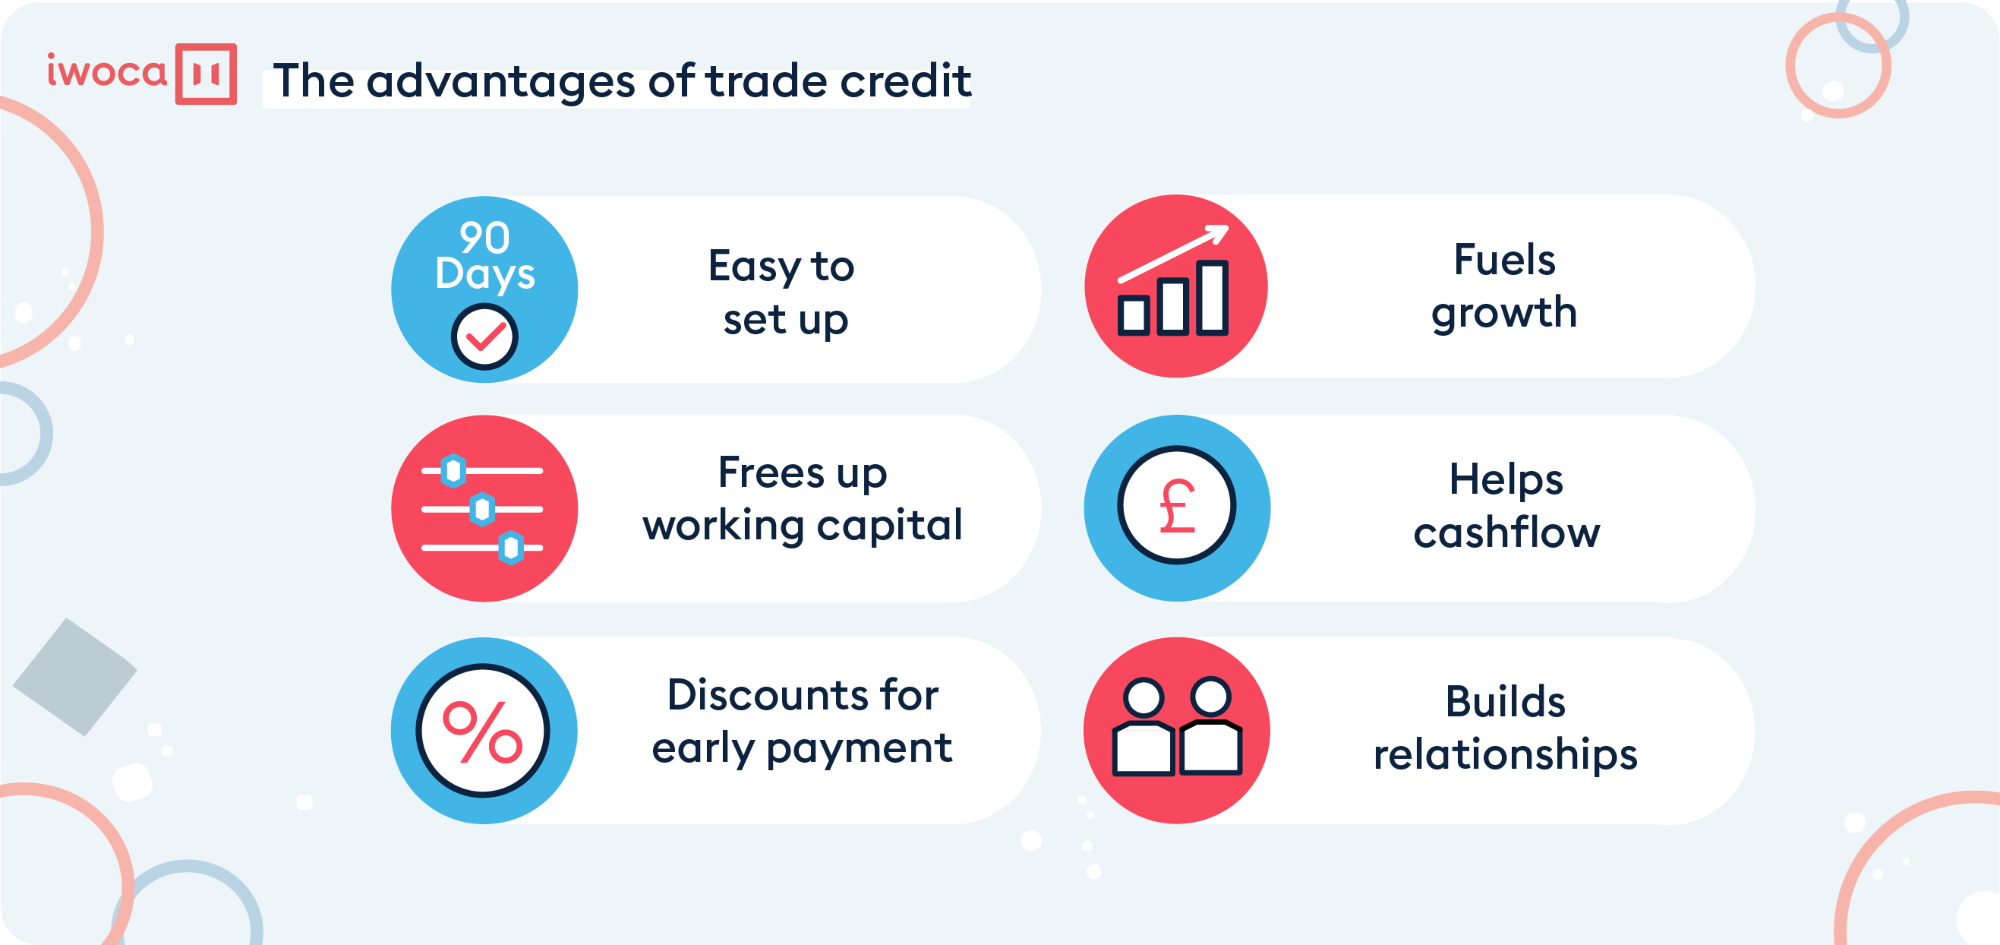 The advantages of trade credit